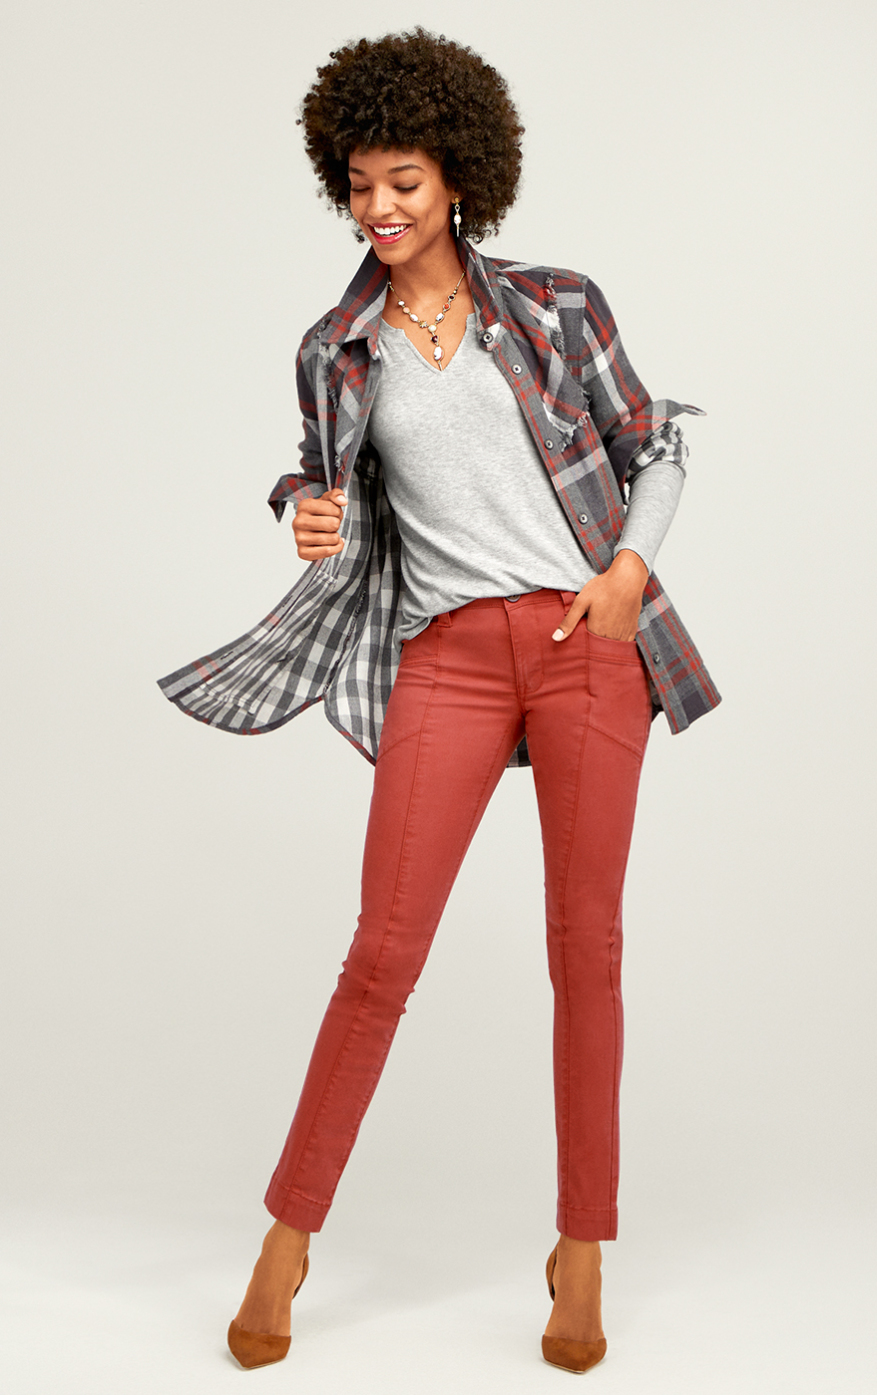 The Explorer in Copper, Tavern Shirt in Autumn Plaid, Simple Tee in Heather Gray